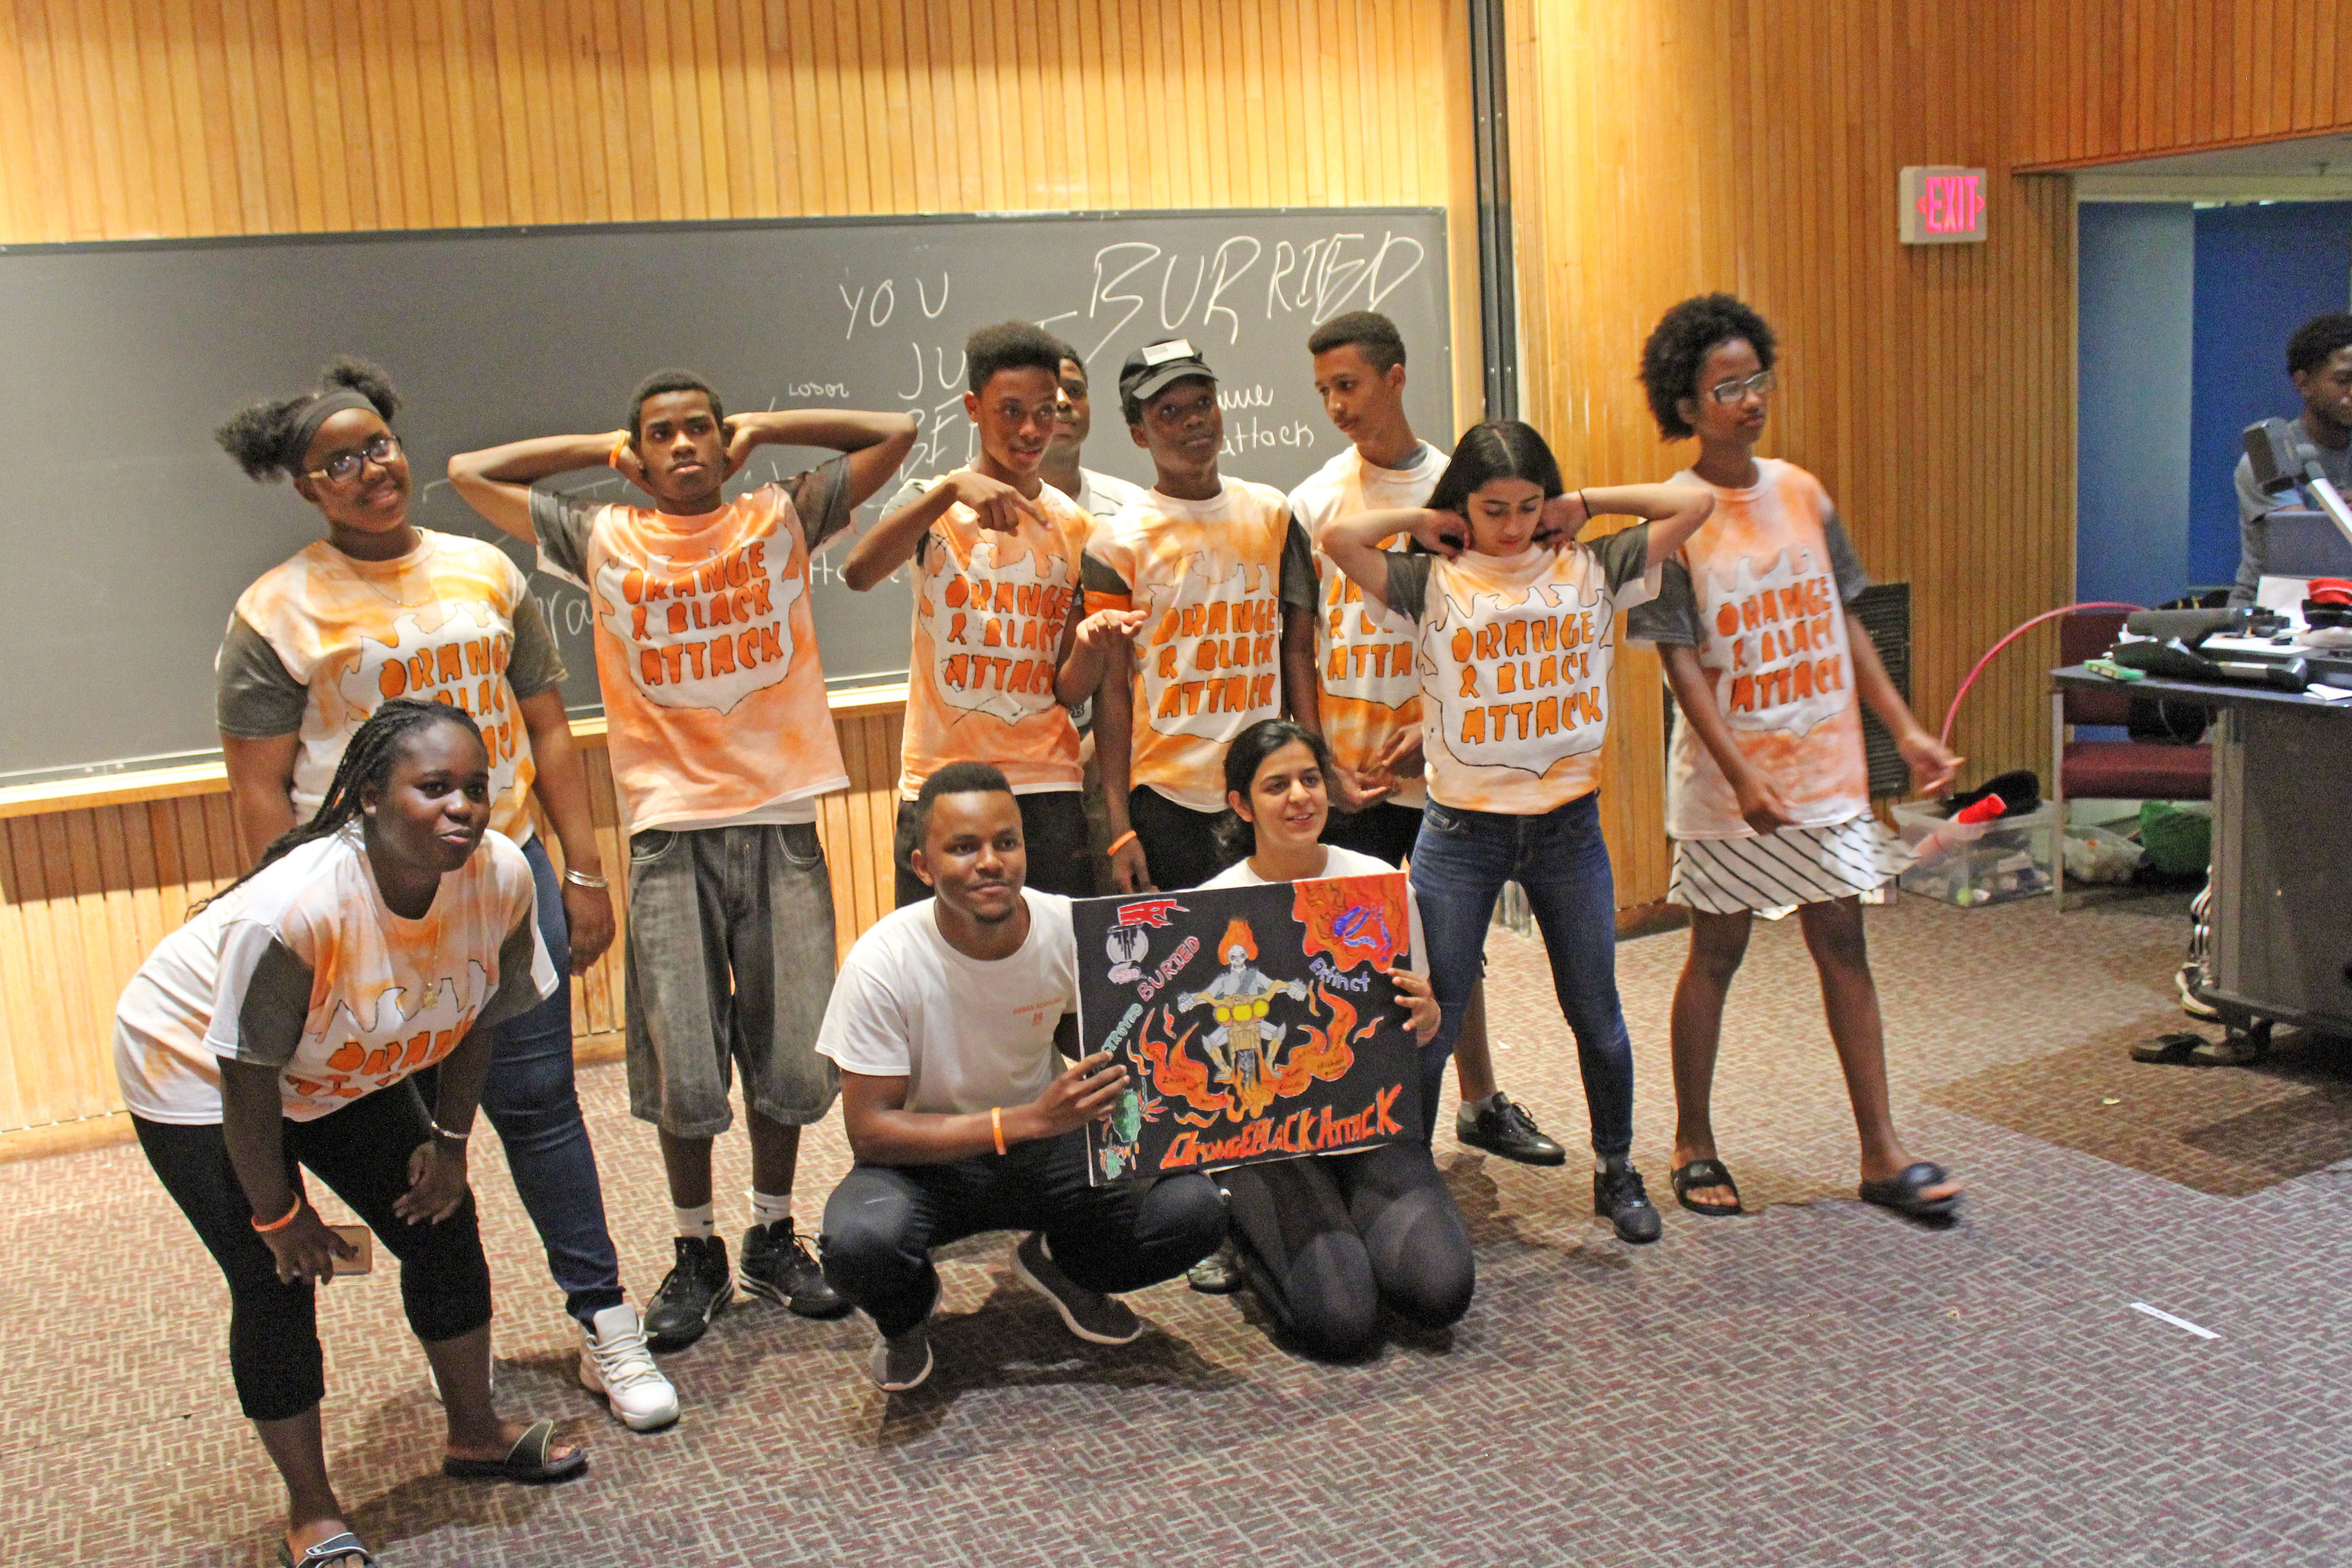 Orange Team posed with their banner.